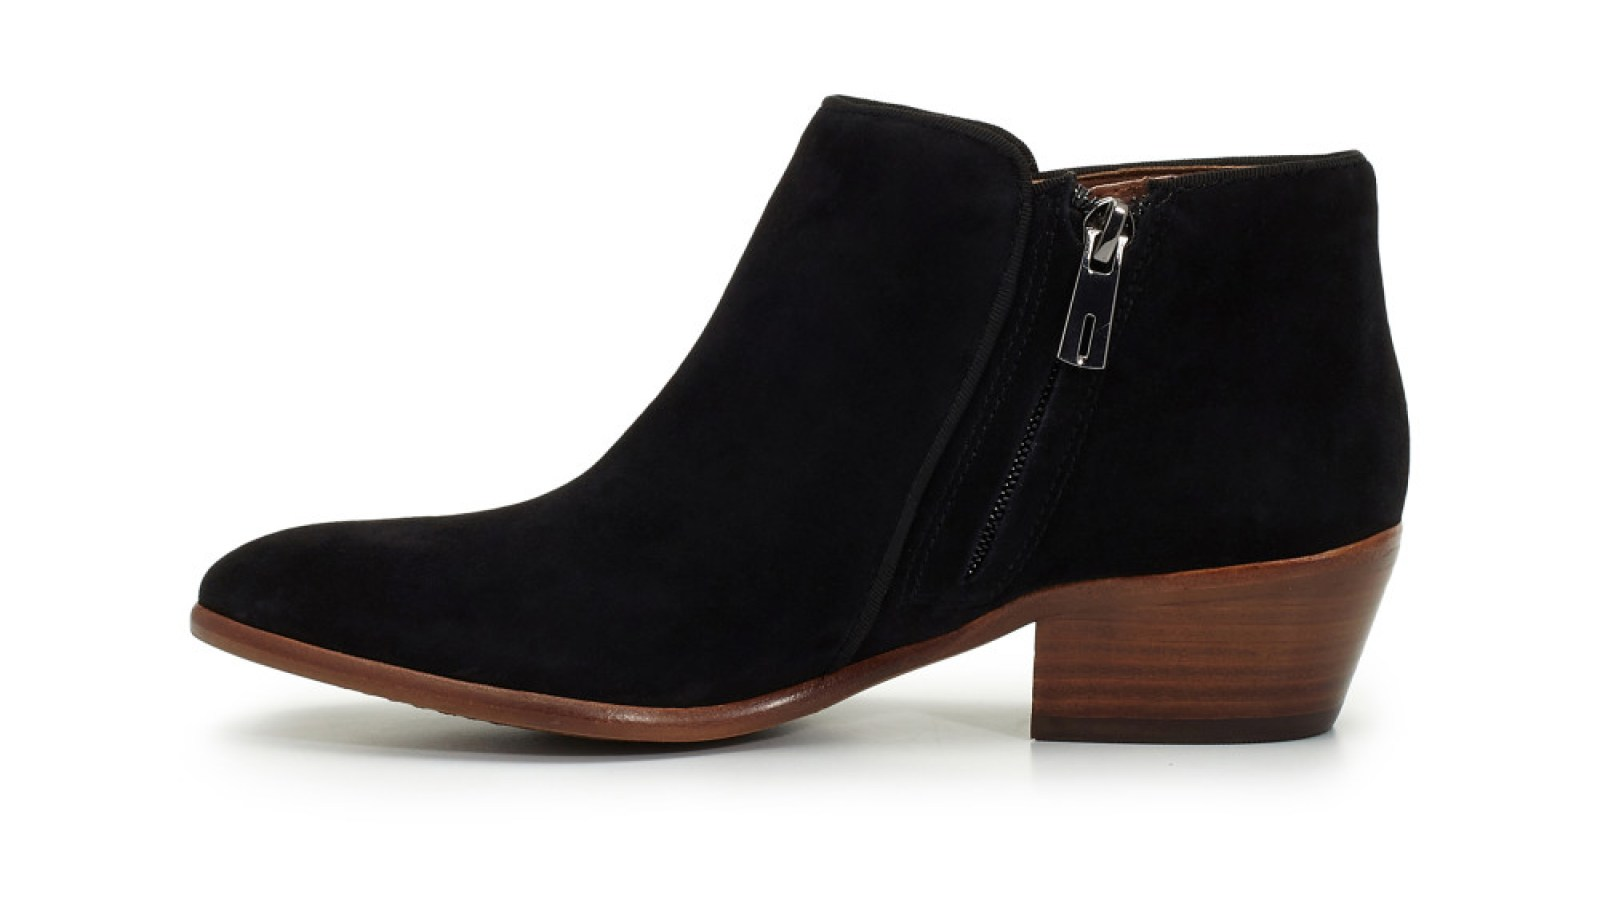 c1b95d31b1b56d The Most Loved Booties on Zappos Have Over 1